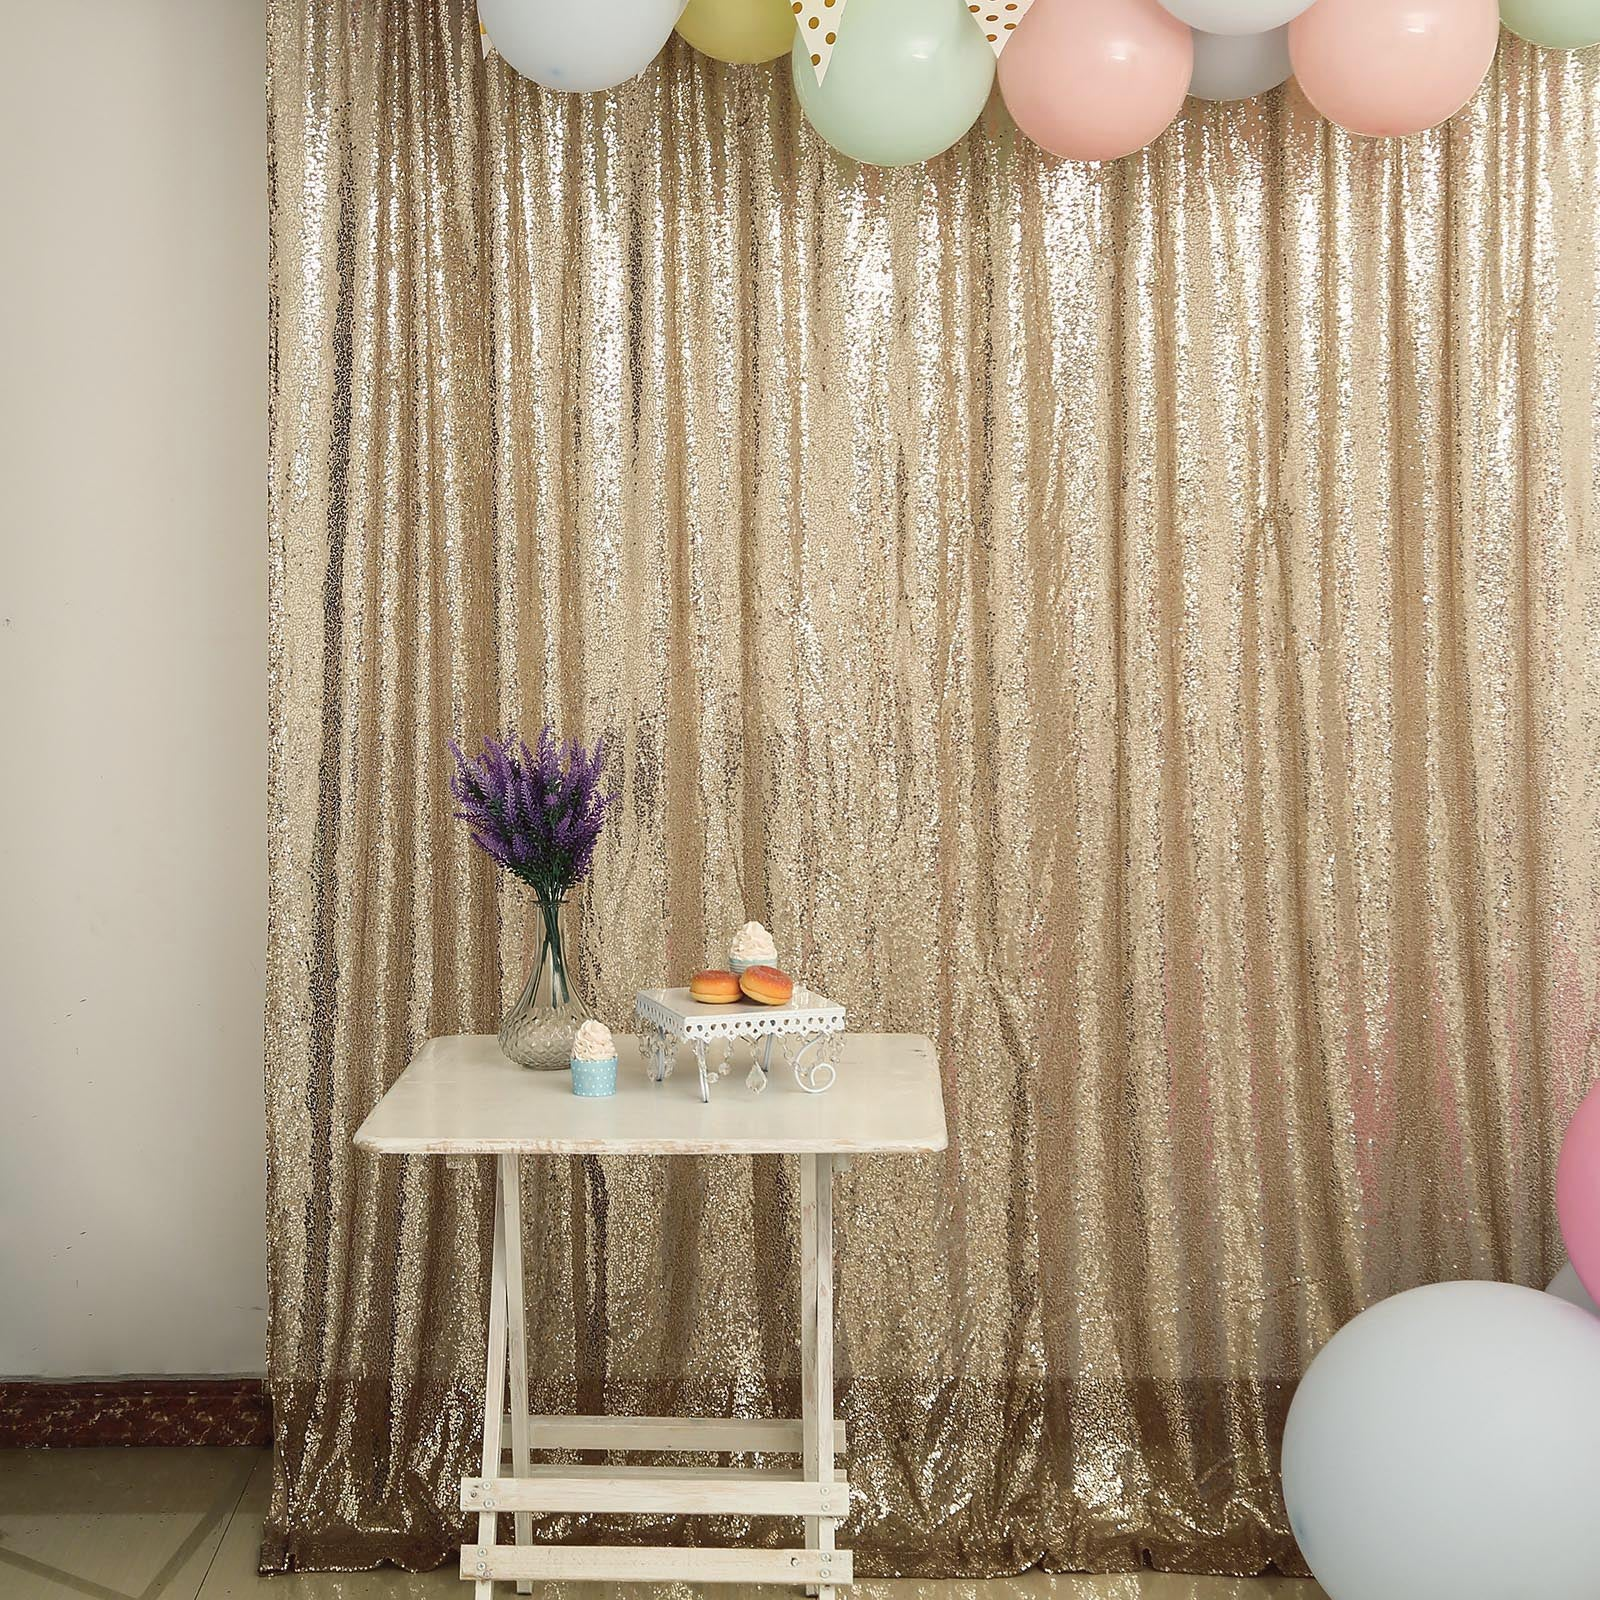 TRLYC 8Ftx8Ft Shimmer Ceremony Background Champagne Sequin Party Wedding Photo Booth Backdrop Curtain